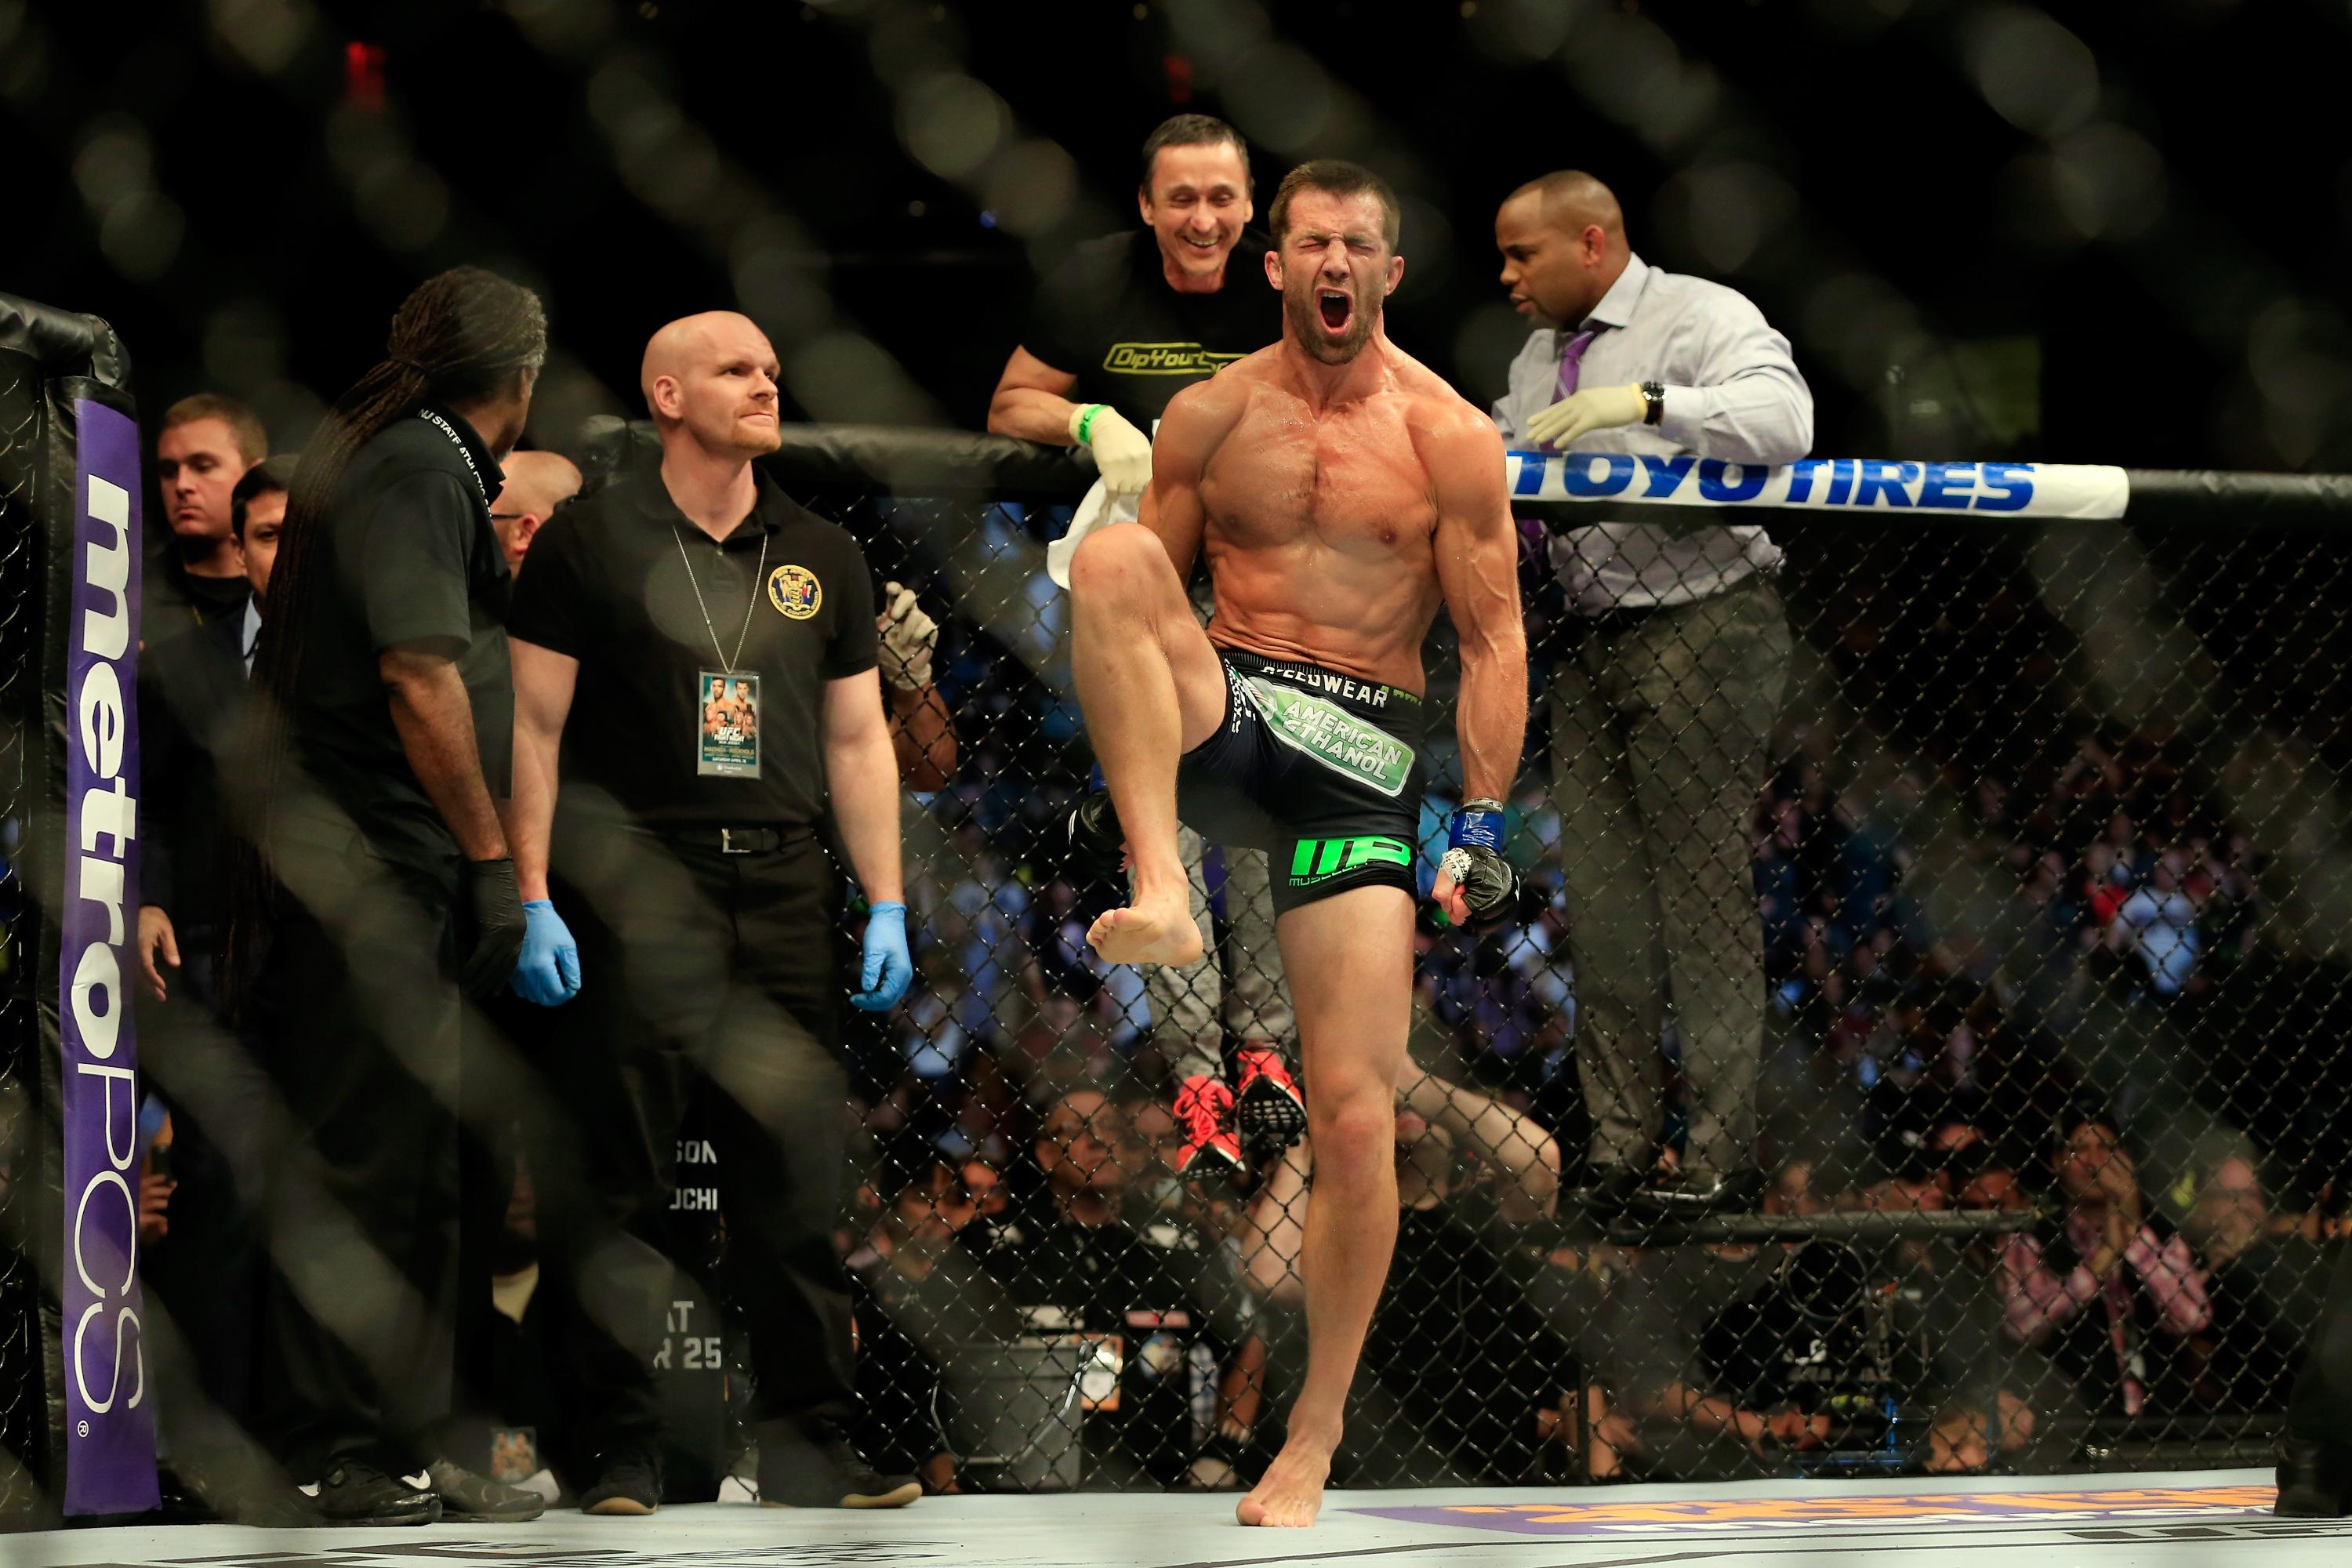 Luke Rockhold vaults into title picture with win over Lyoto Machida